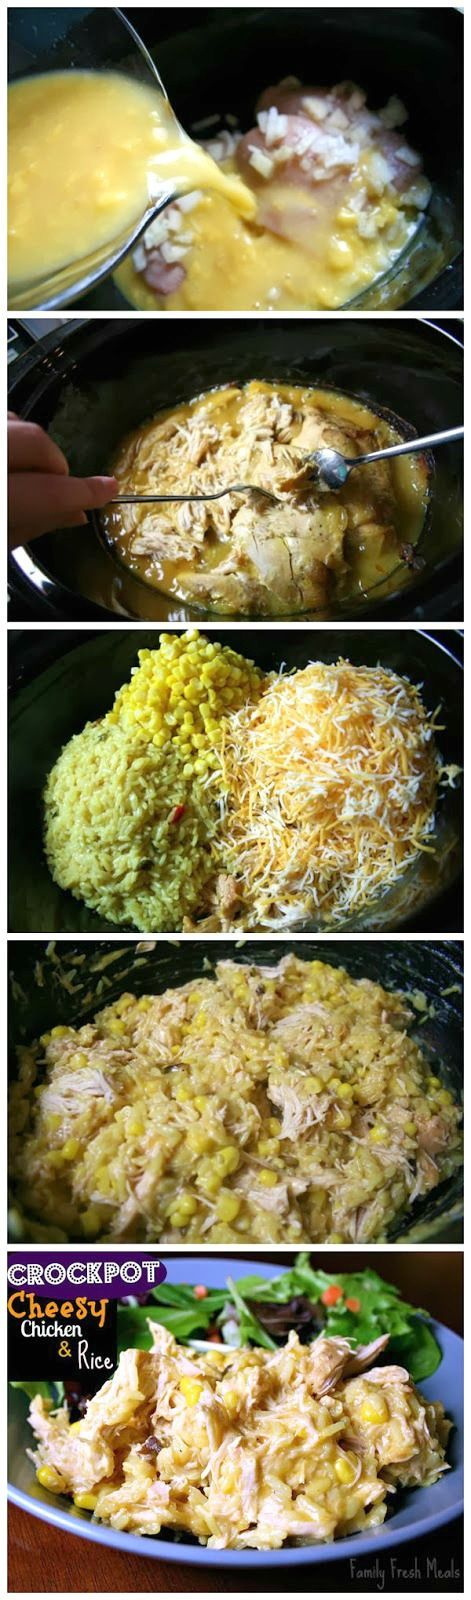 crock pot ideas 100 ideas to try about crockpot cooker cowboy 30747